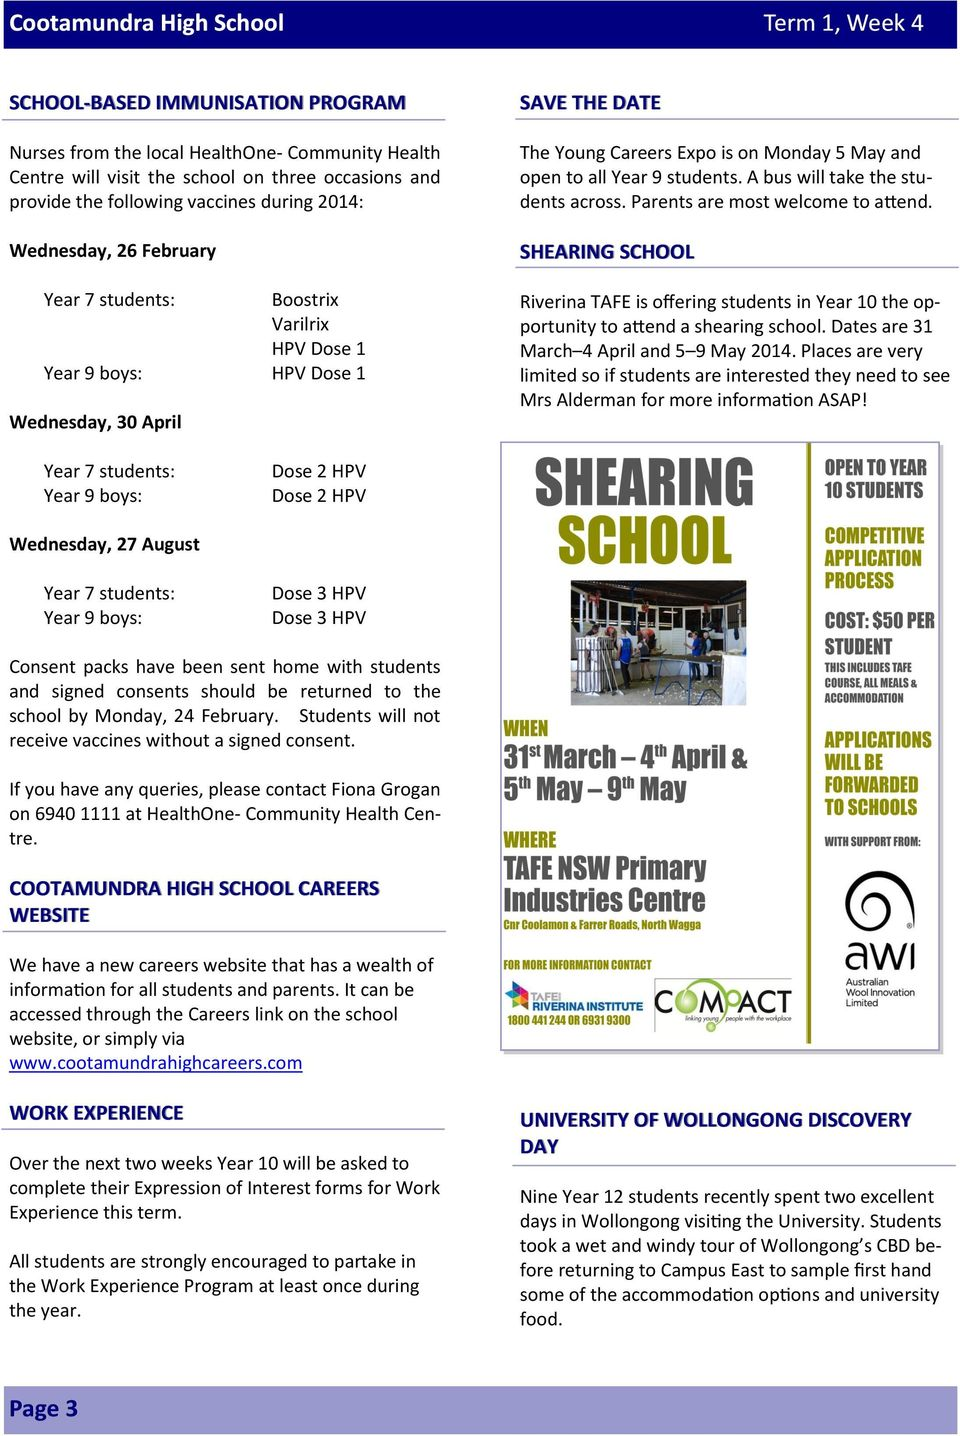 A bus will take the students across. Parents are most welcome to attend. SHEARING SCHOOL Riverina TAFE is offering students in Year 10 the opportunity to attend a shearing school.